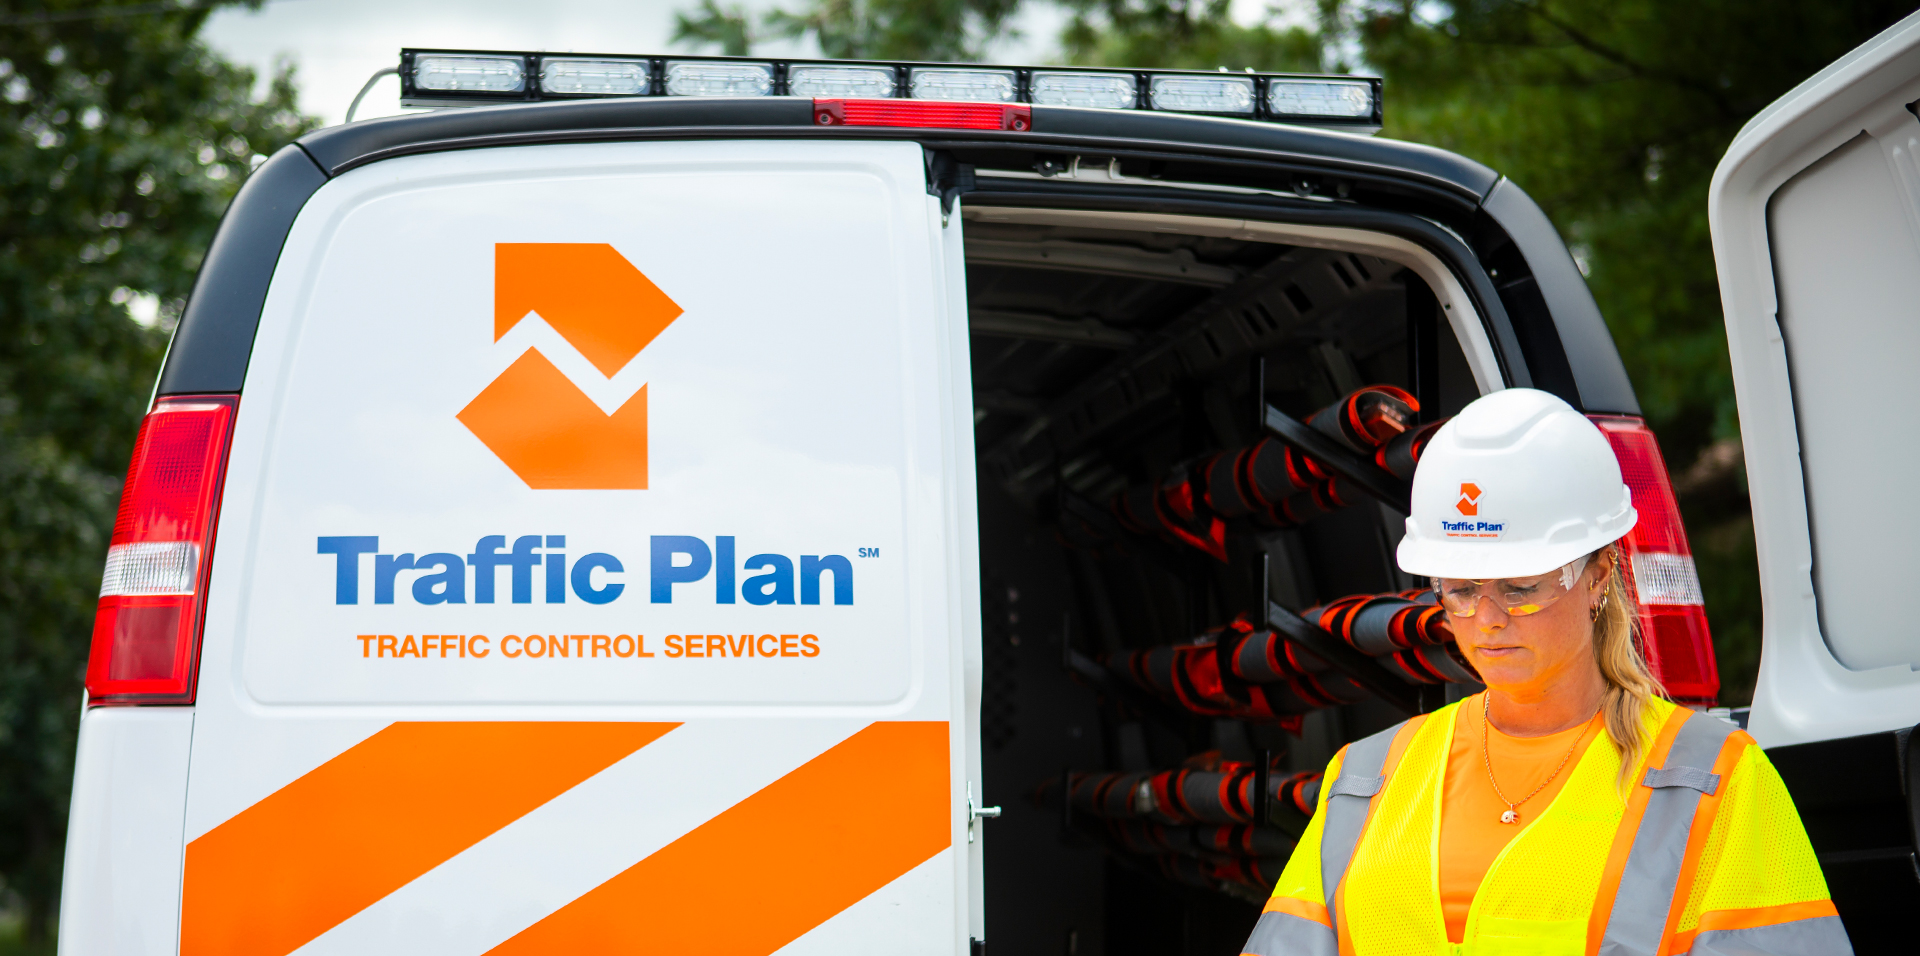 About Traffic Plan Traffic Control Services